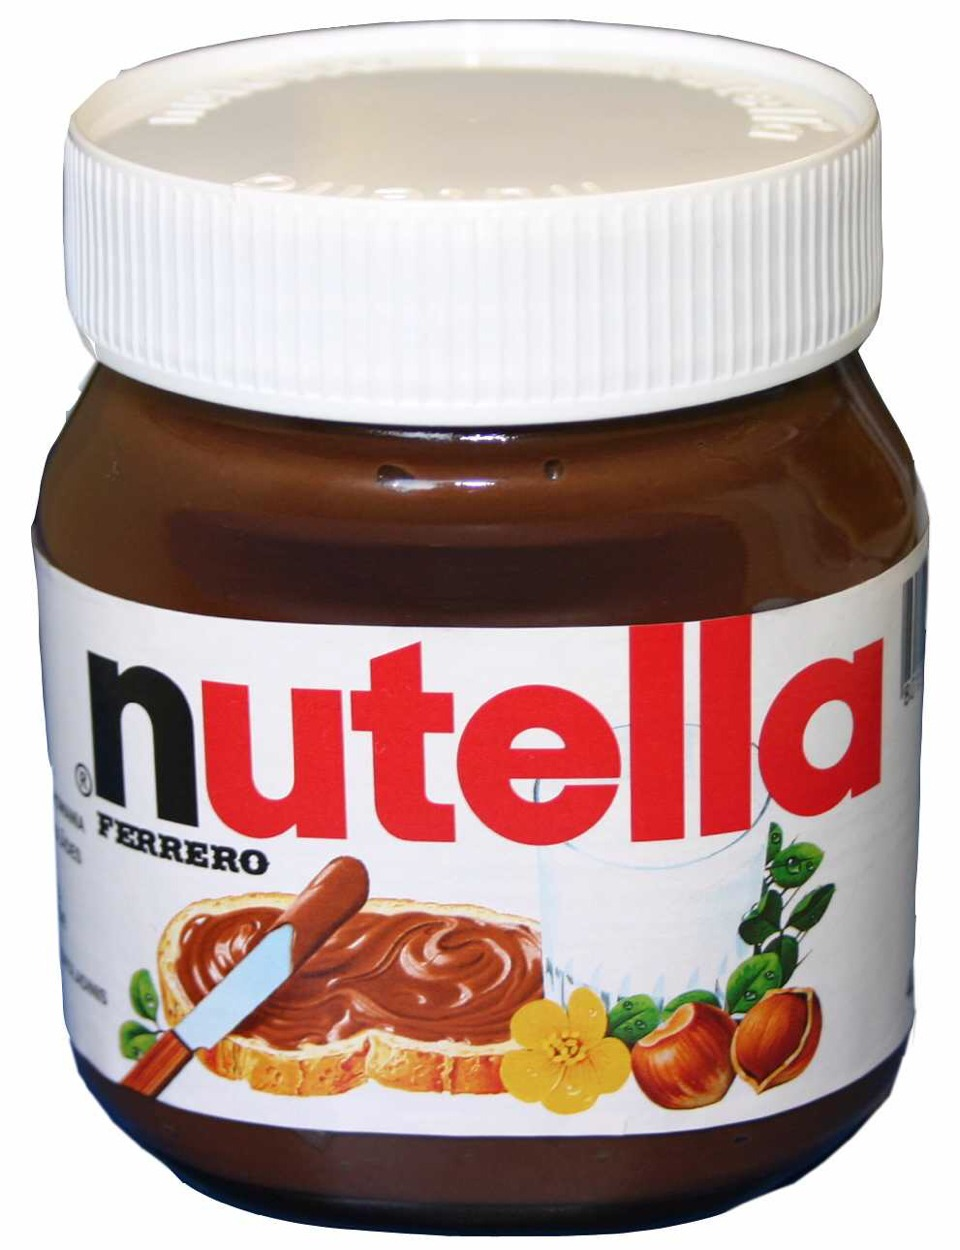 Mix a tub of nutella and galf a cup of flour add more if needed and half a cup of suger mix toghter in a bowl